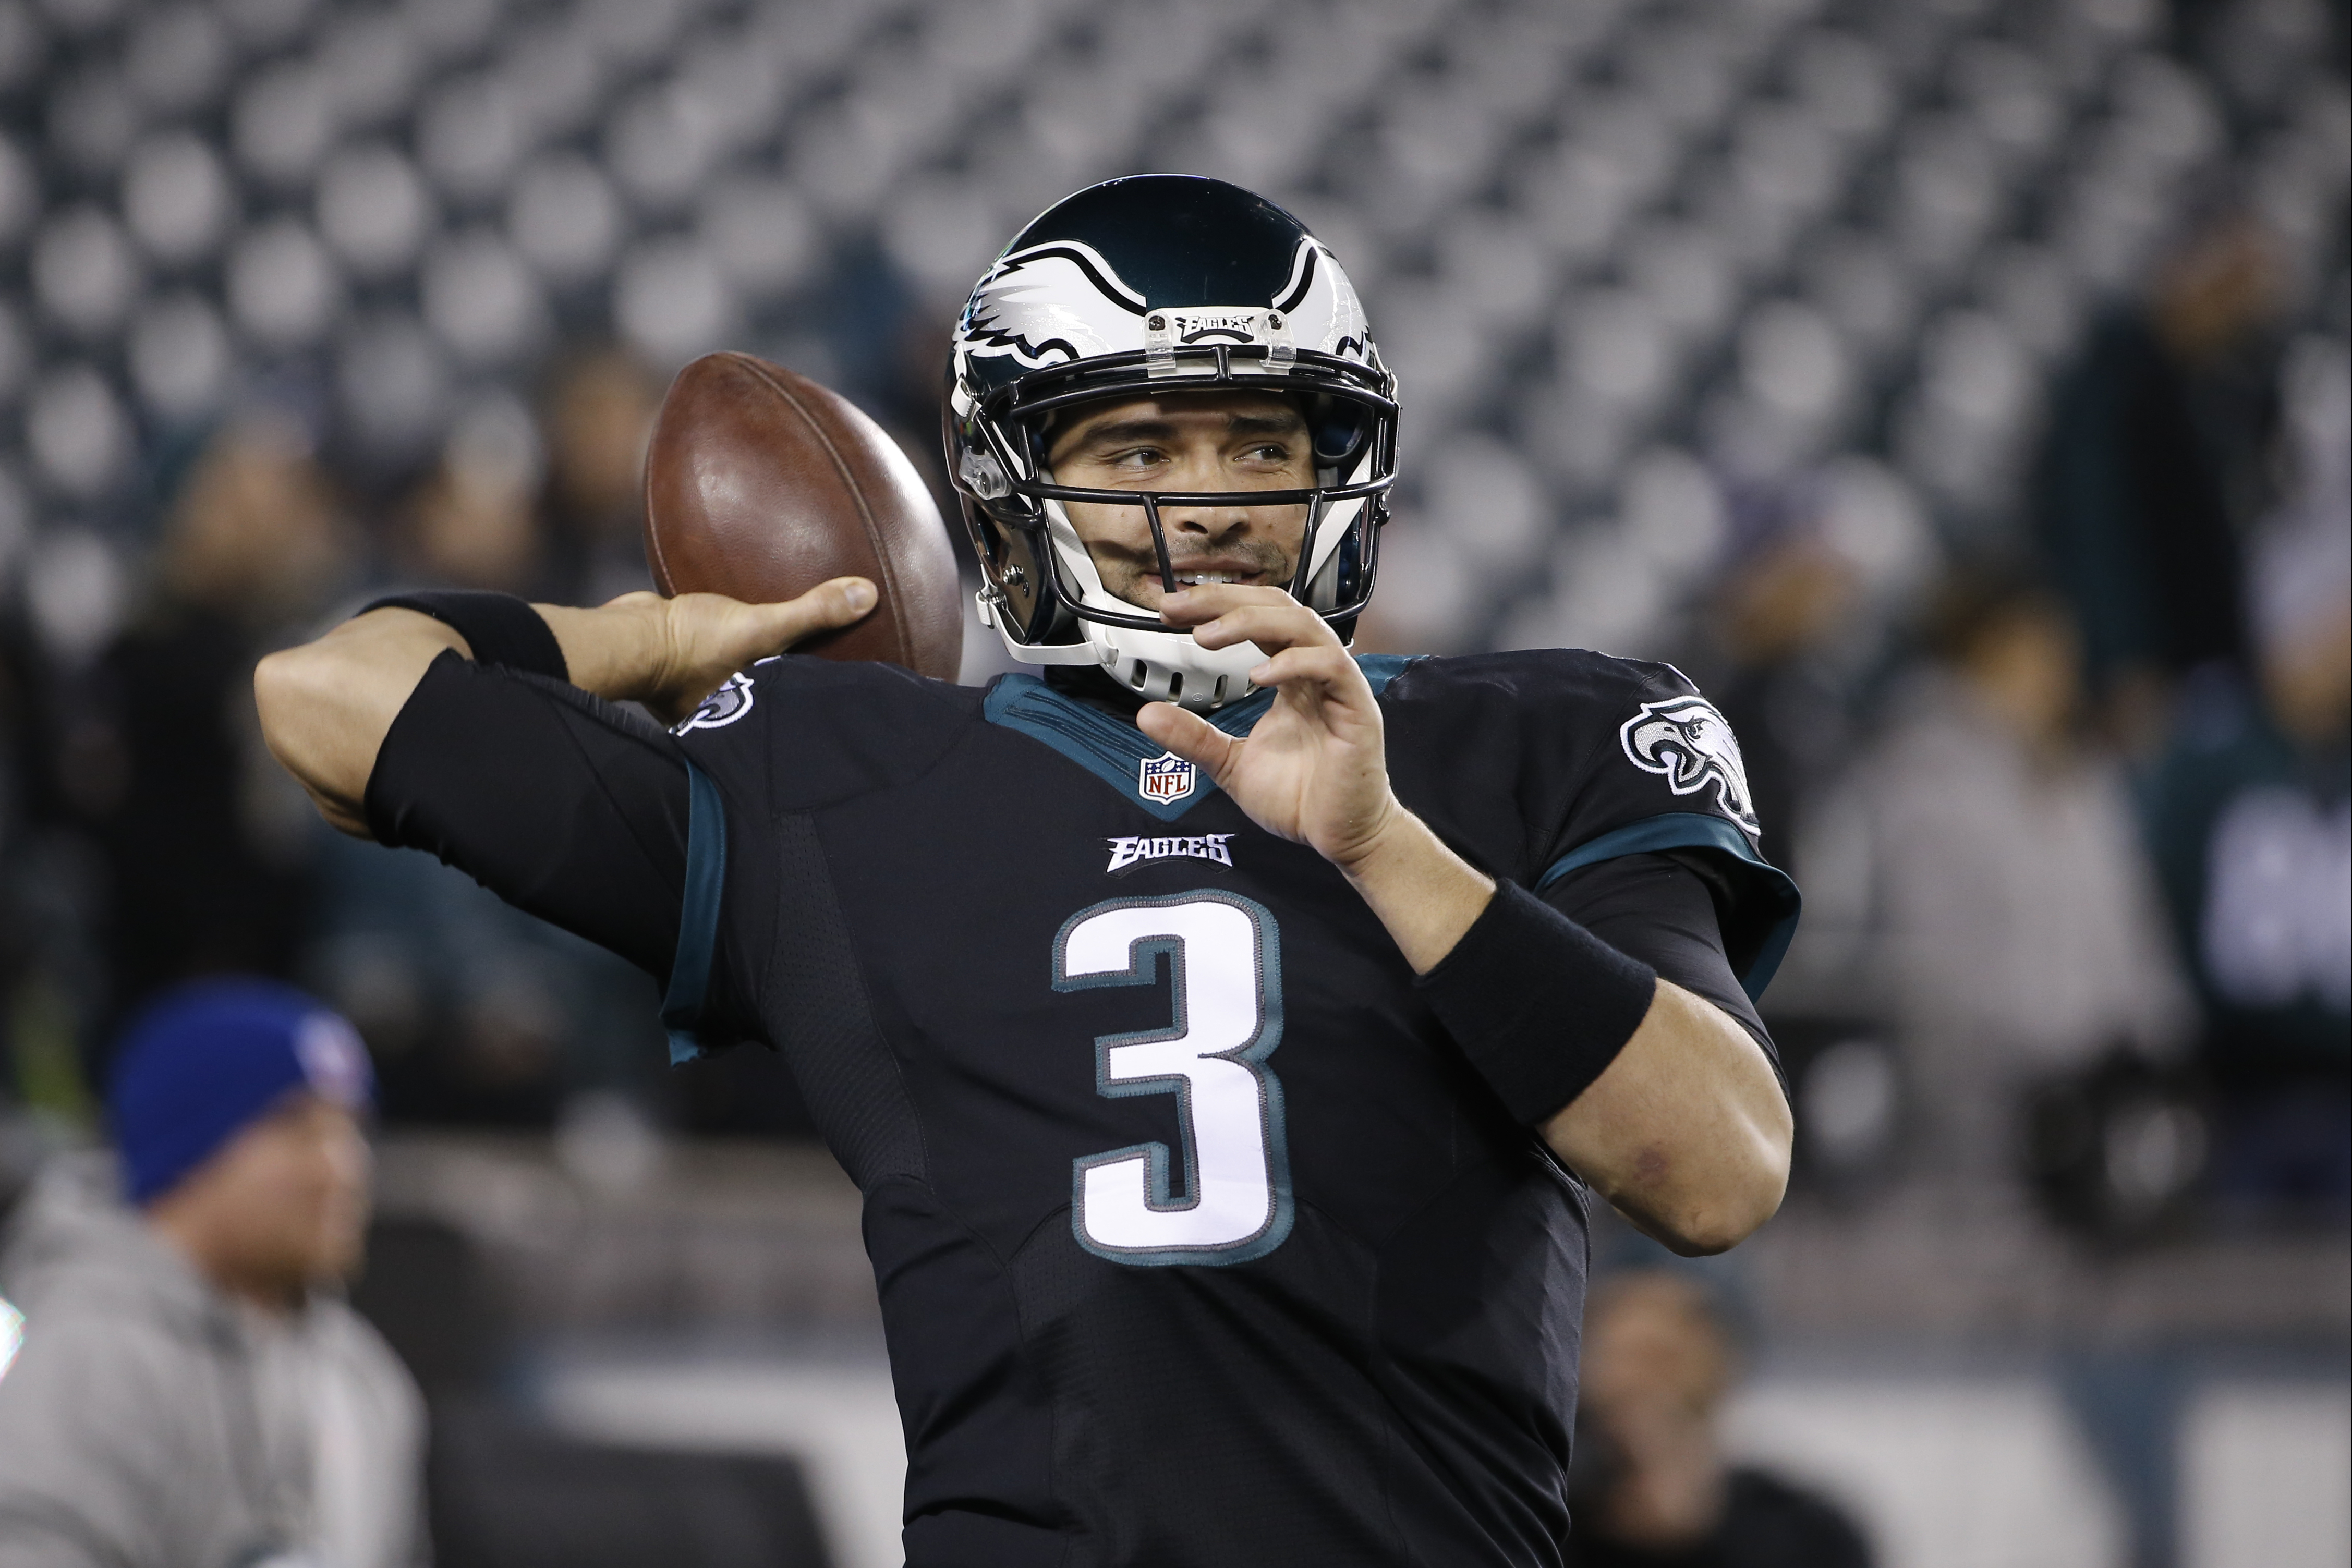 Philadelphia Eagles' Mark Sanchez warms up before an NFL football game against the Arizona Cardinals, Sunday, Dec. 20, 2015, in Philadelphia. (AP Photo/Matt Rourke)